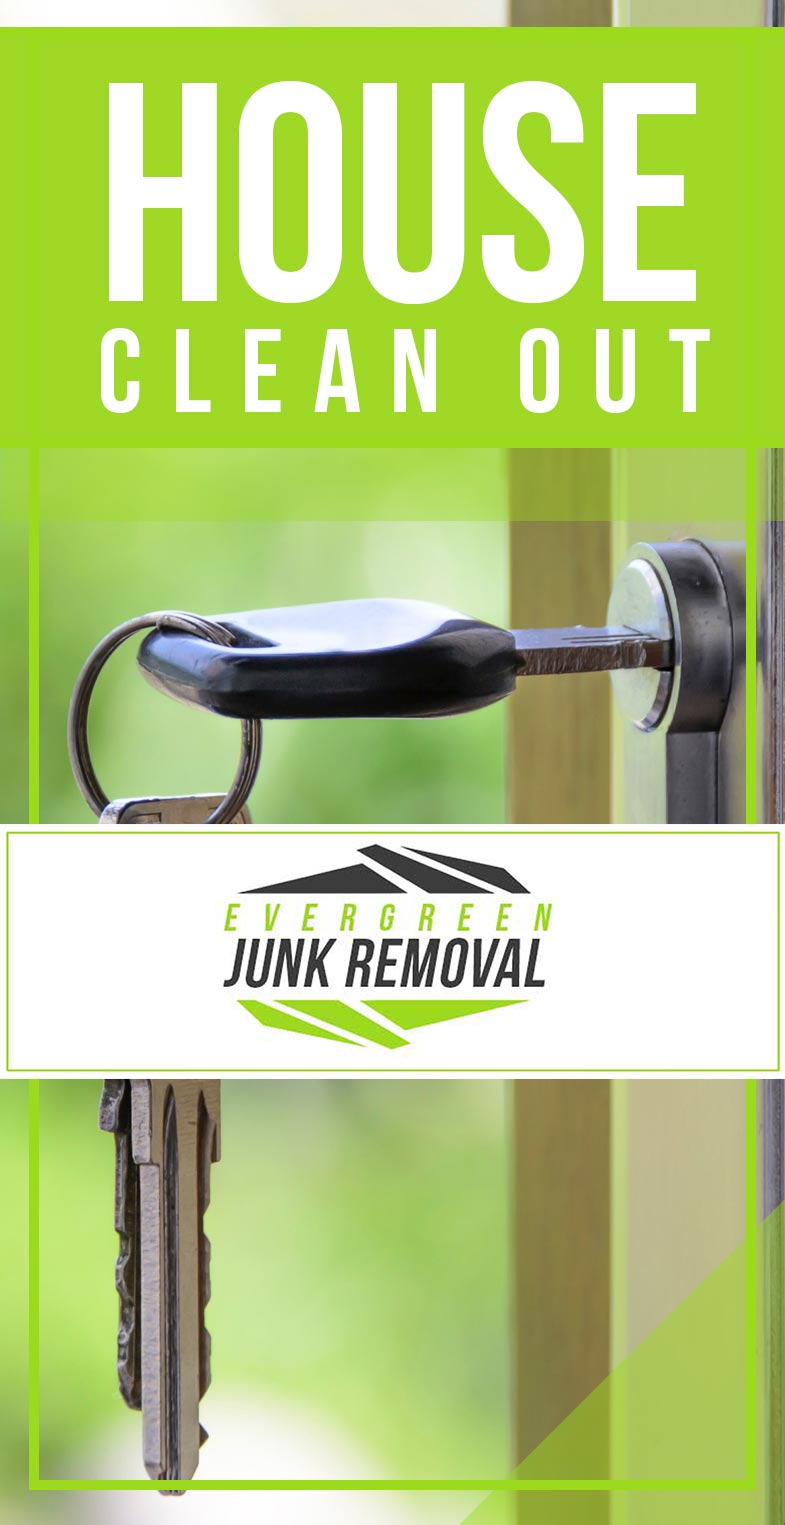 Junk Removal Westlake House Clean Out